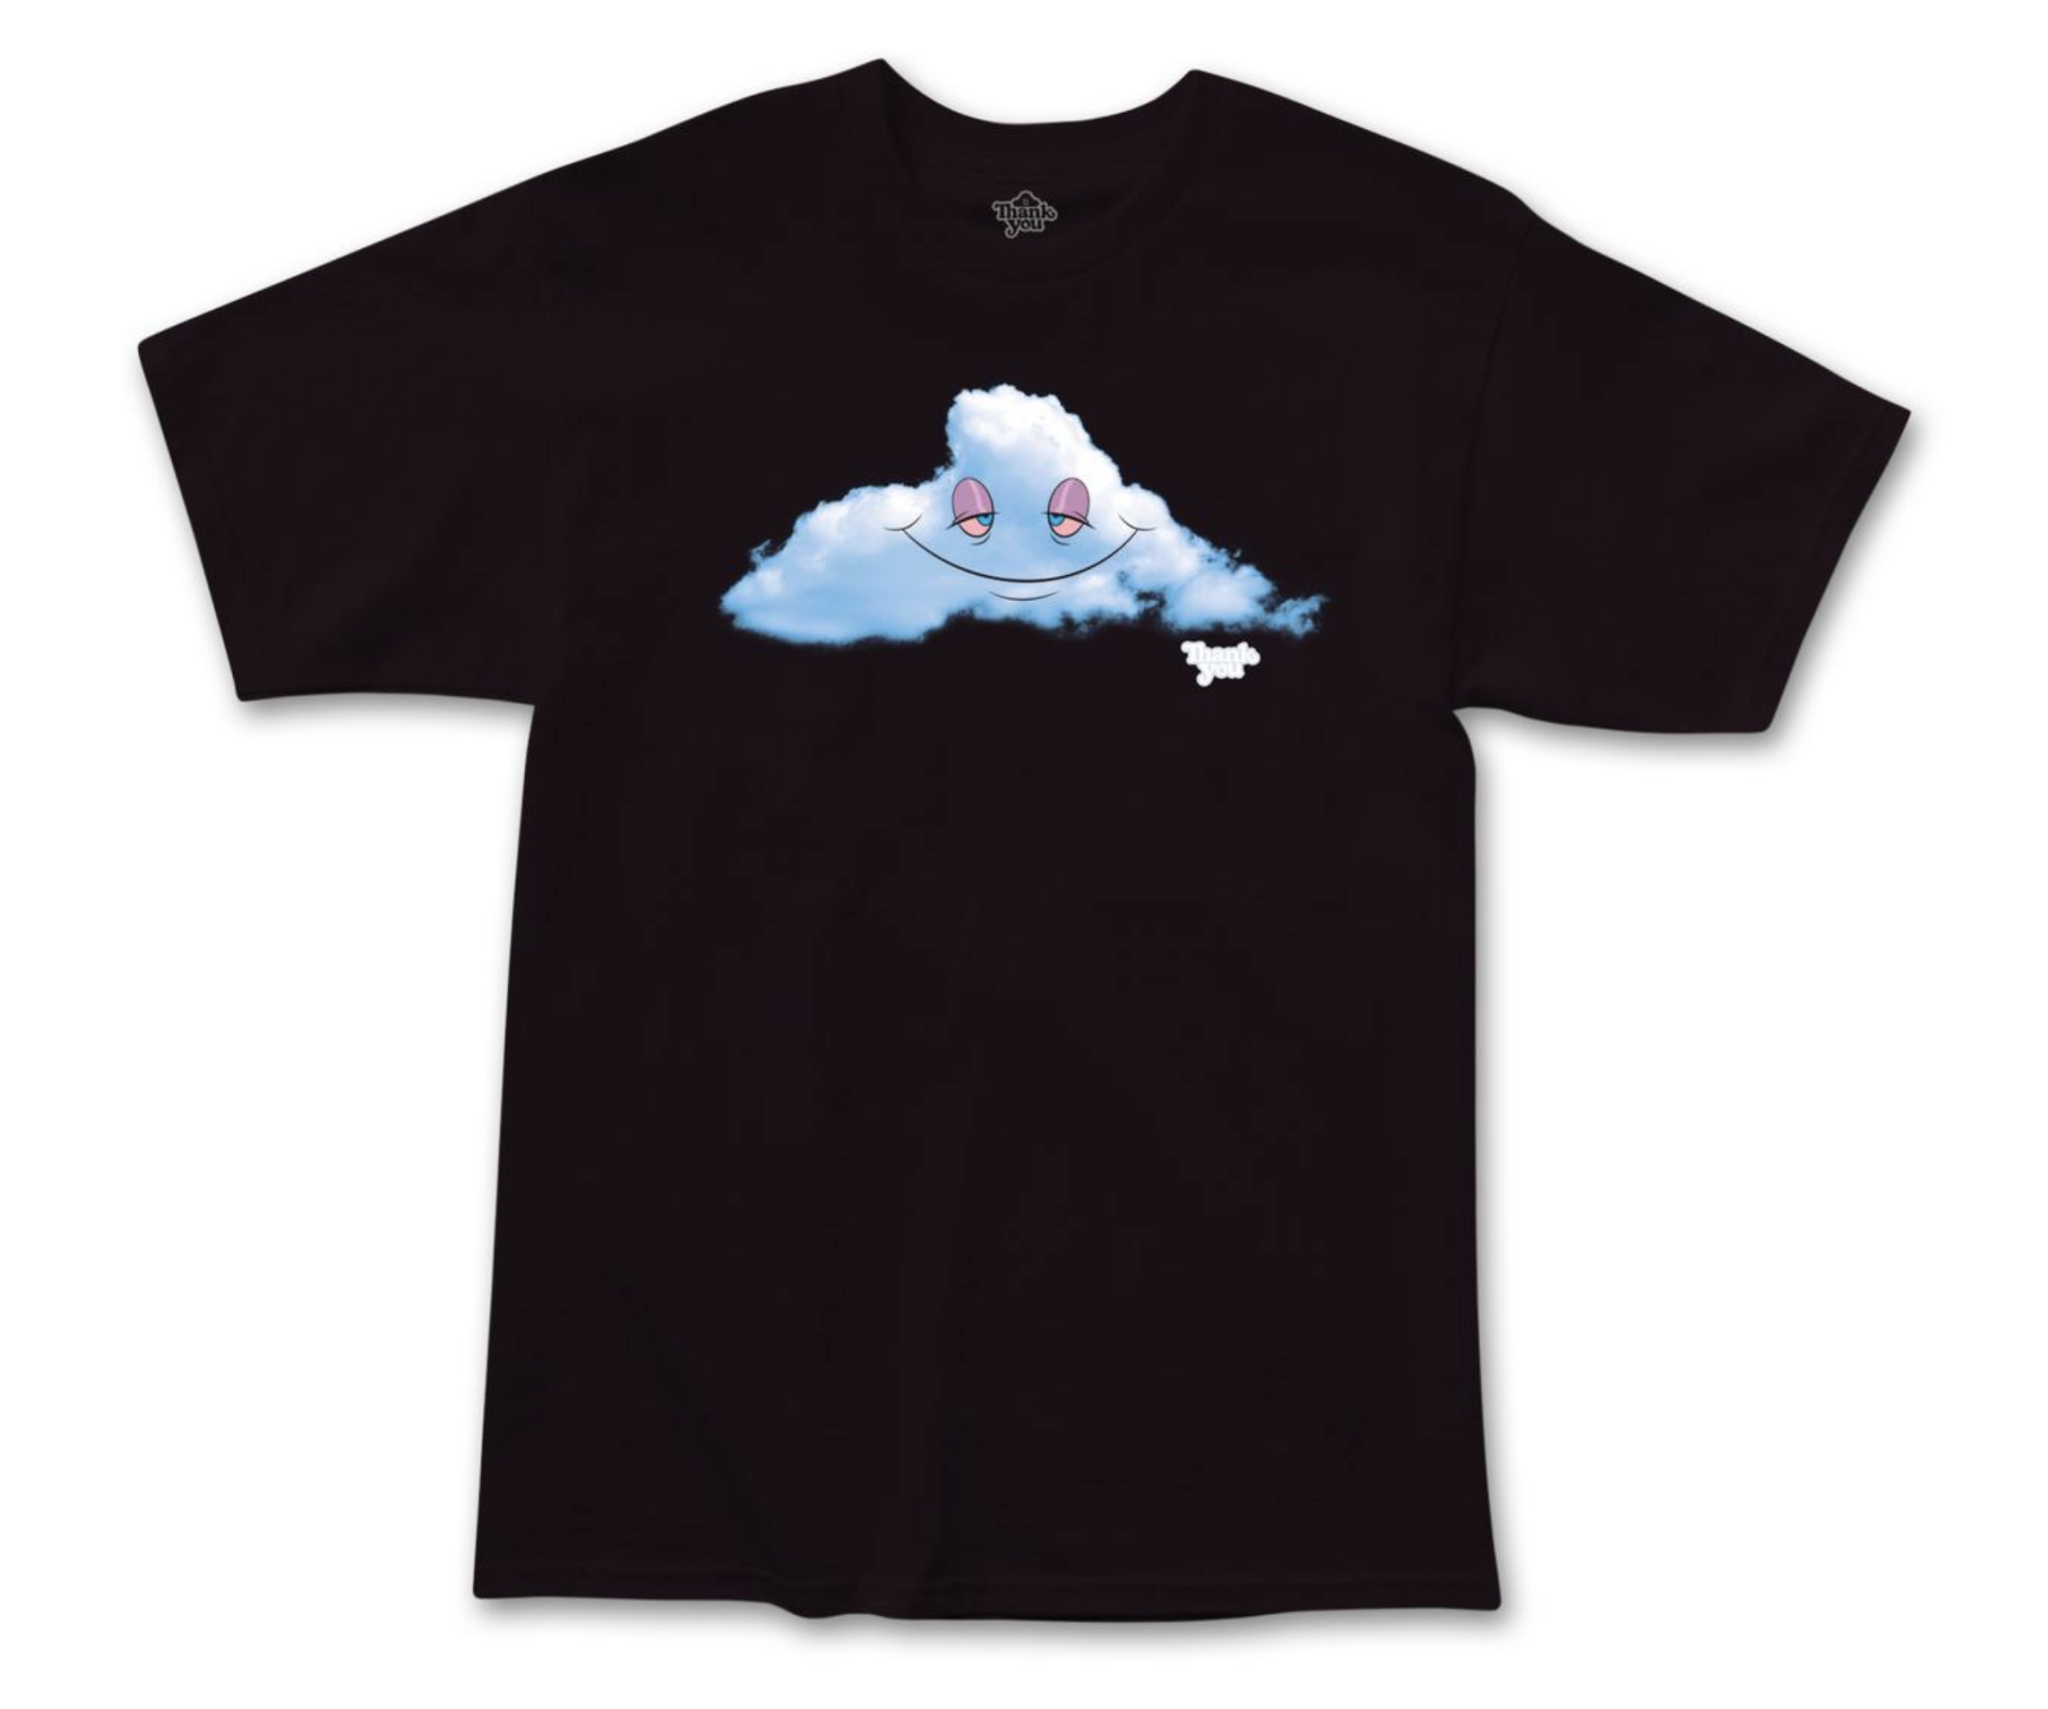 Thank You Head in the Clouds Black Tee